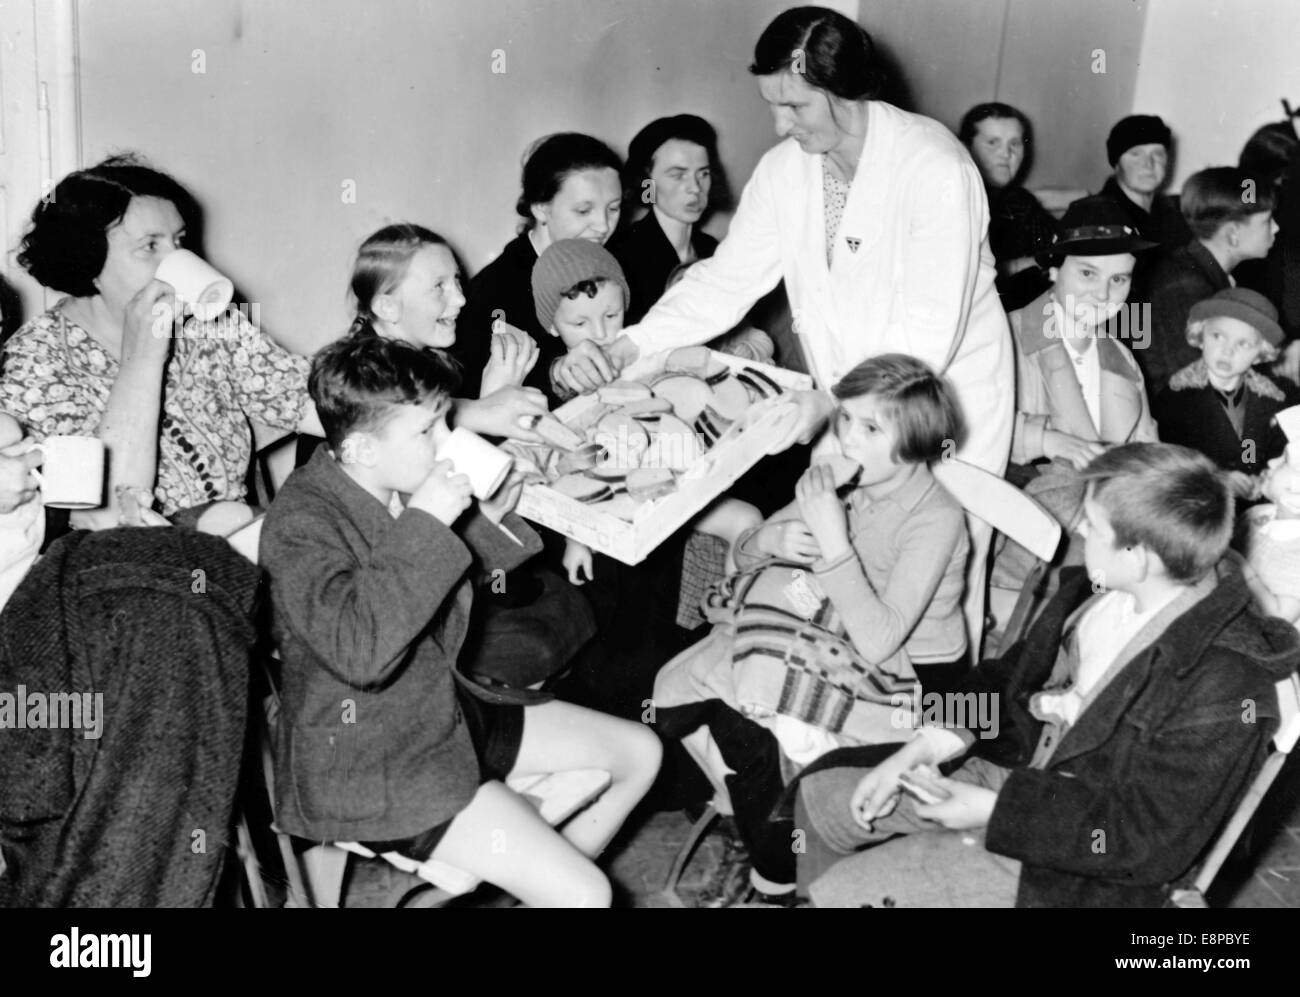 The picture from a Nazi news report shows Sudeten German refugees who fled from Czechoslovakia in the waiting room - Stock Image